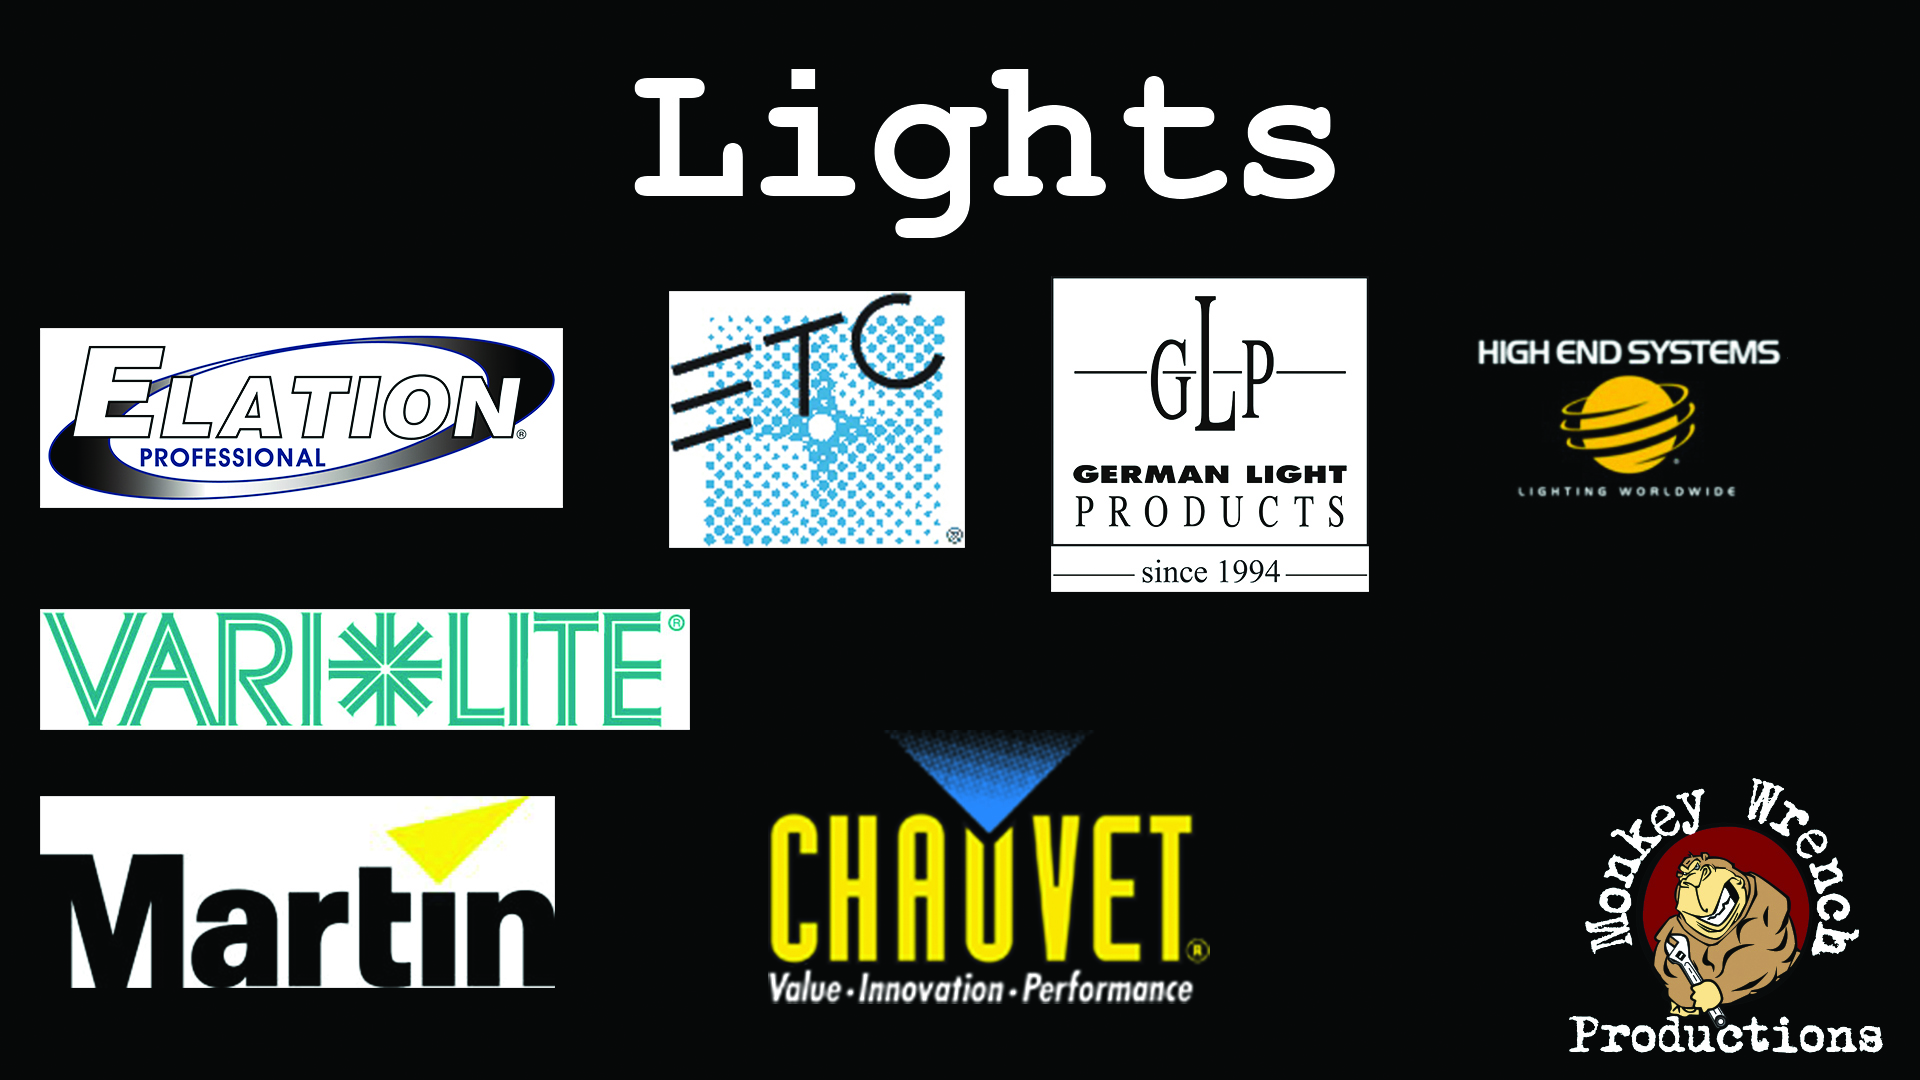 Light manufactuers carried